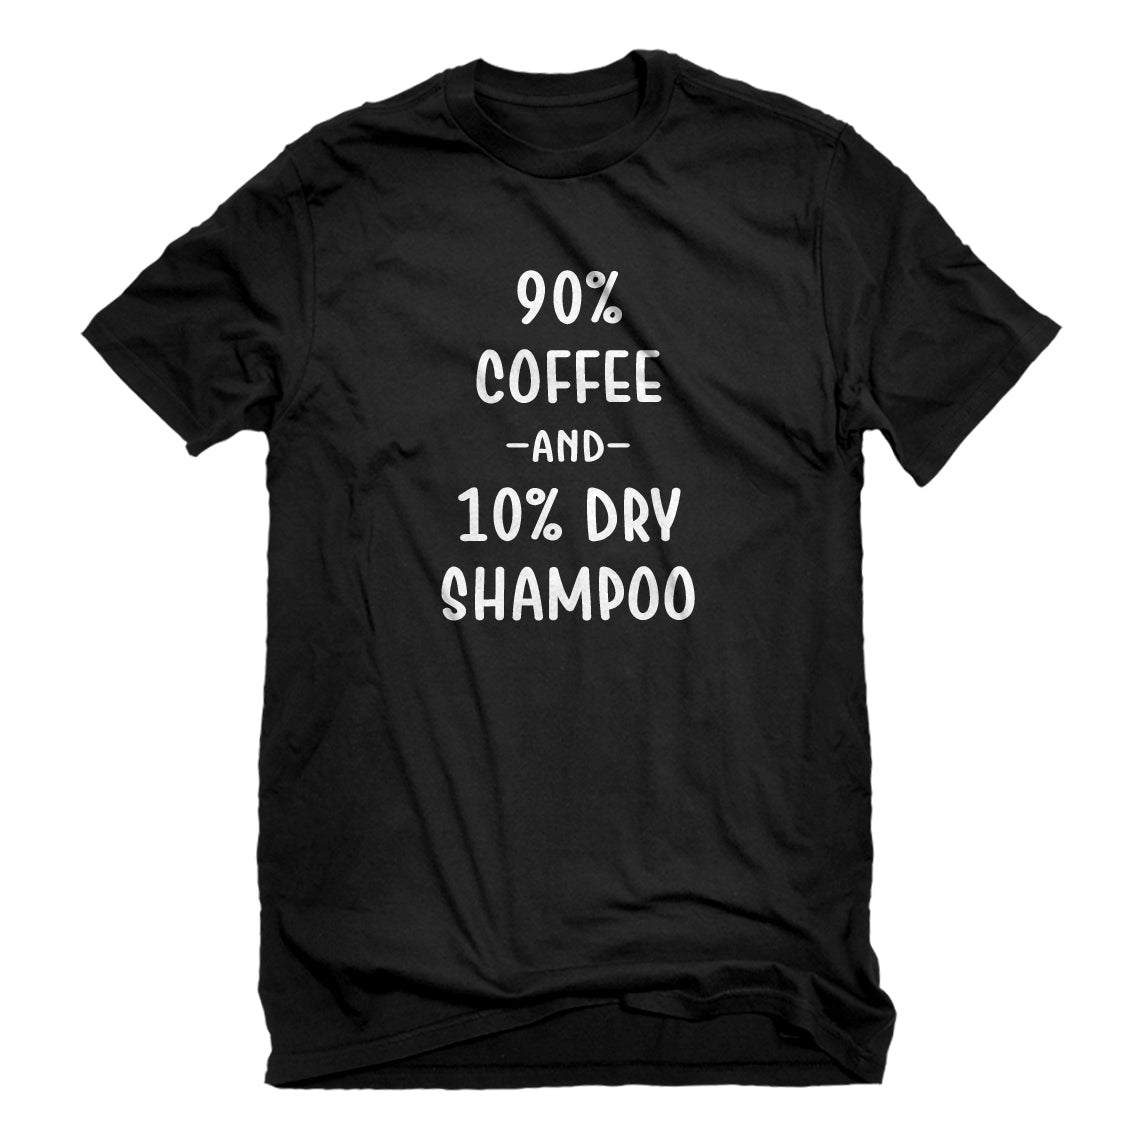 Mens 90% Coffee 10% Dry Shampoo Unisex T-shirt